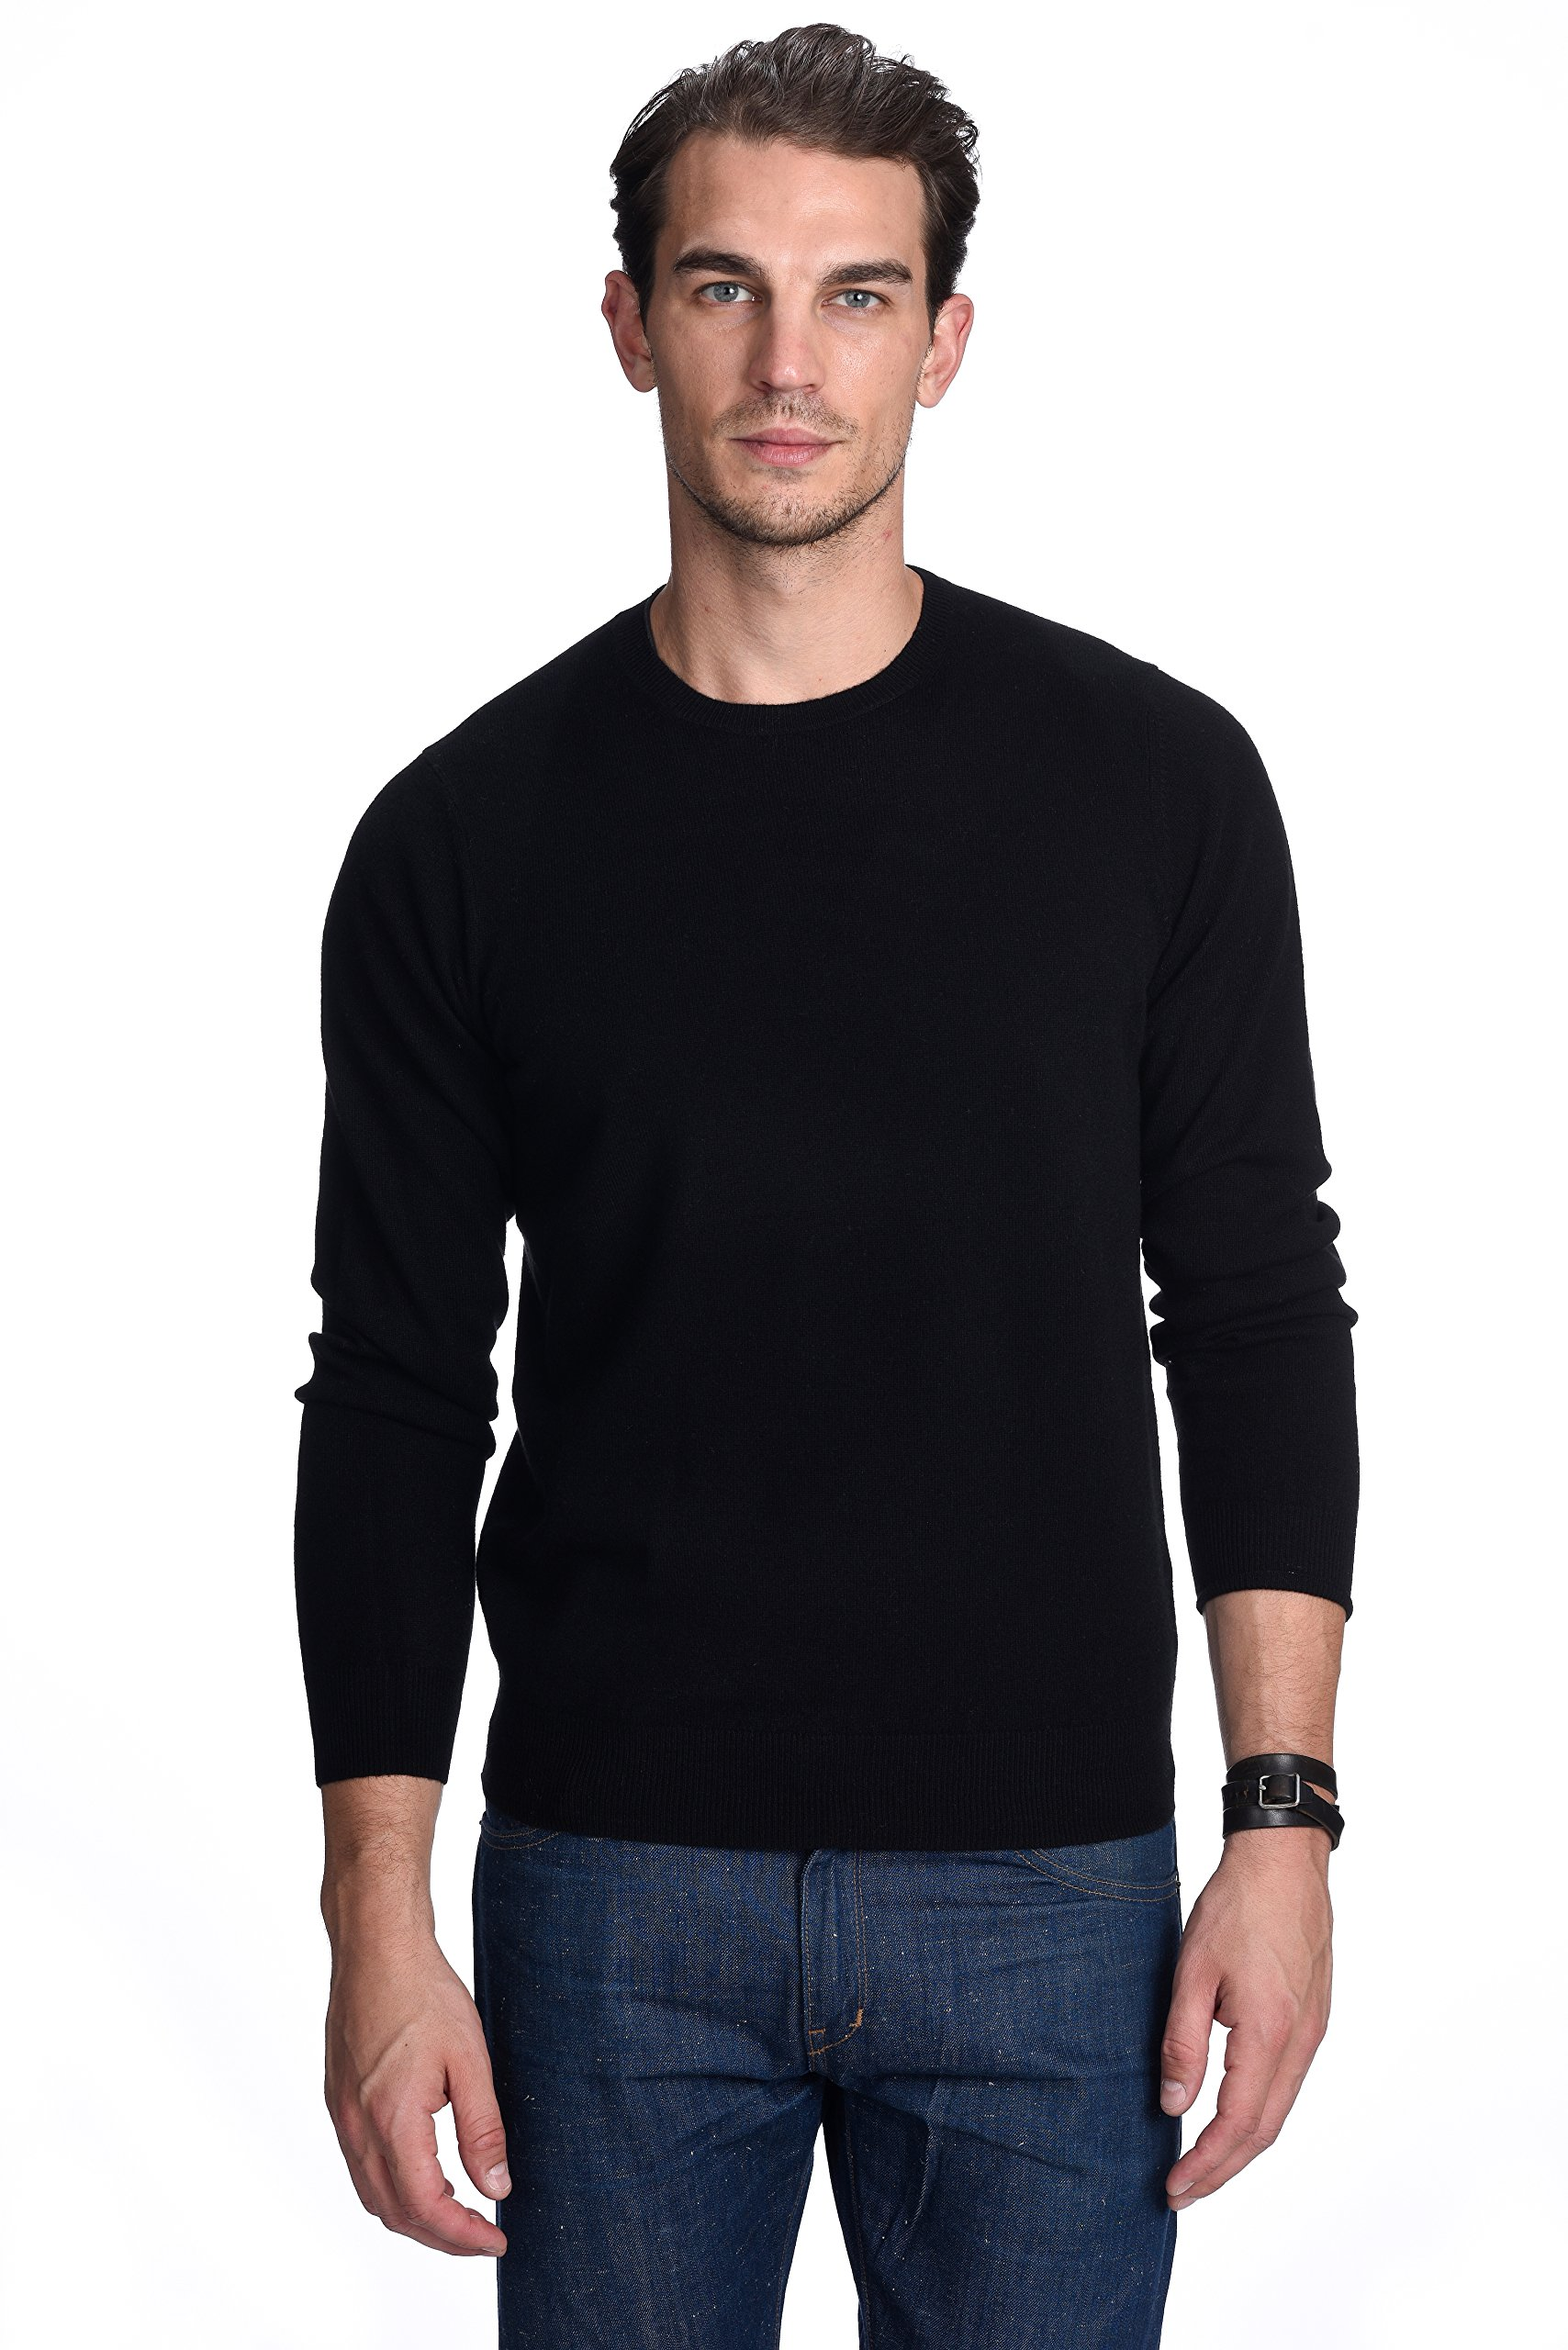 State Cashmere Men's 100% Pure Cashmere Long Sleeve Pullover Crew Neck Sweater (Medium, Black)